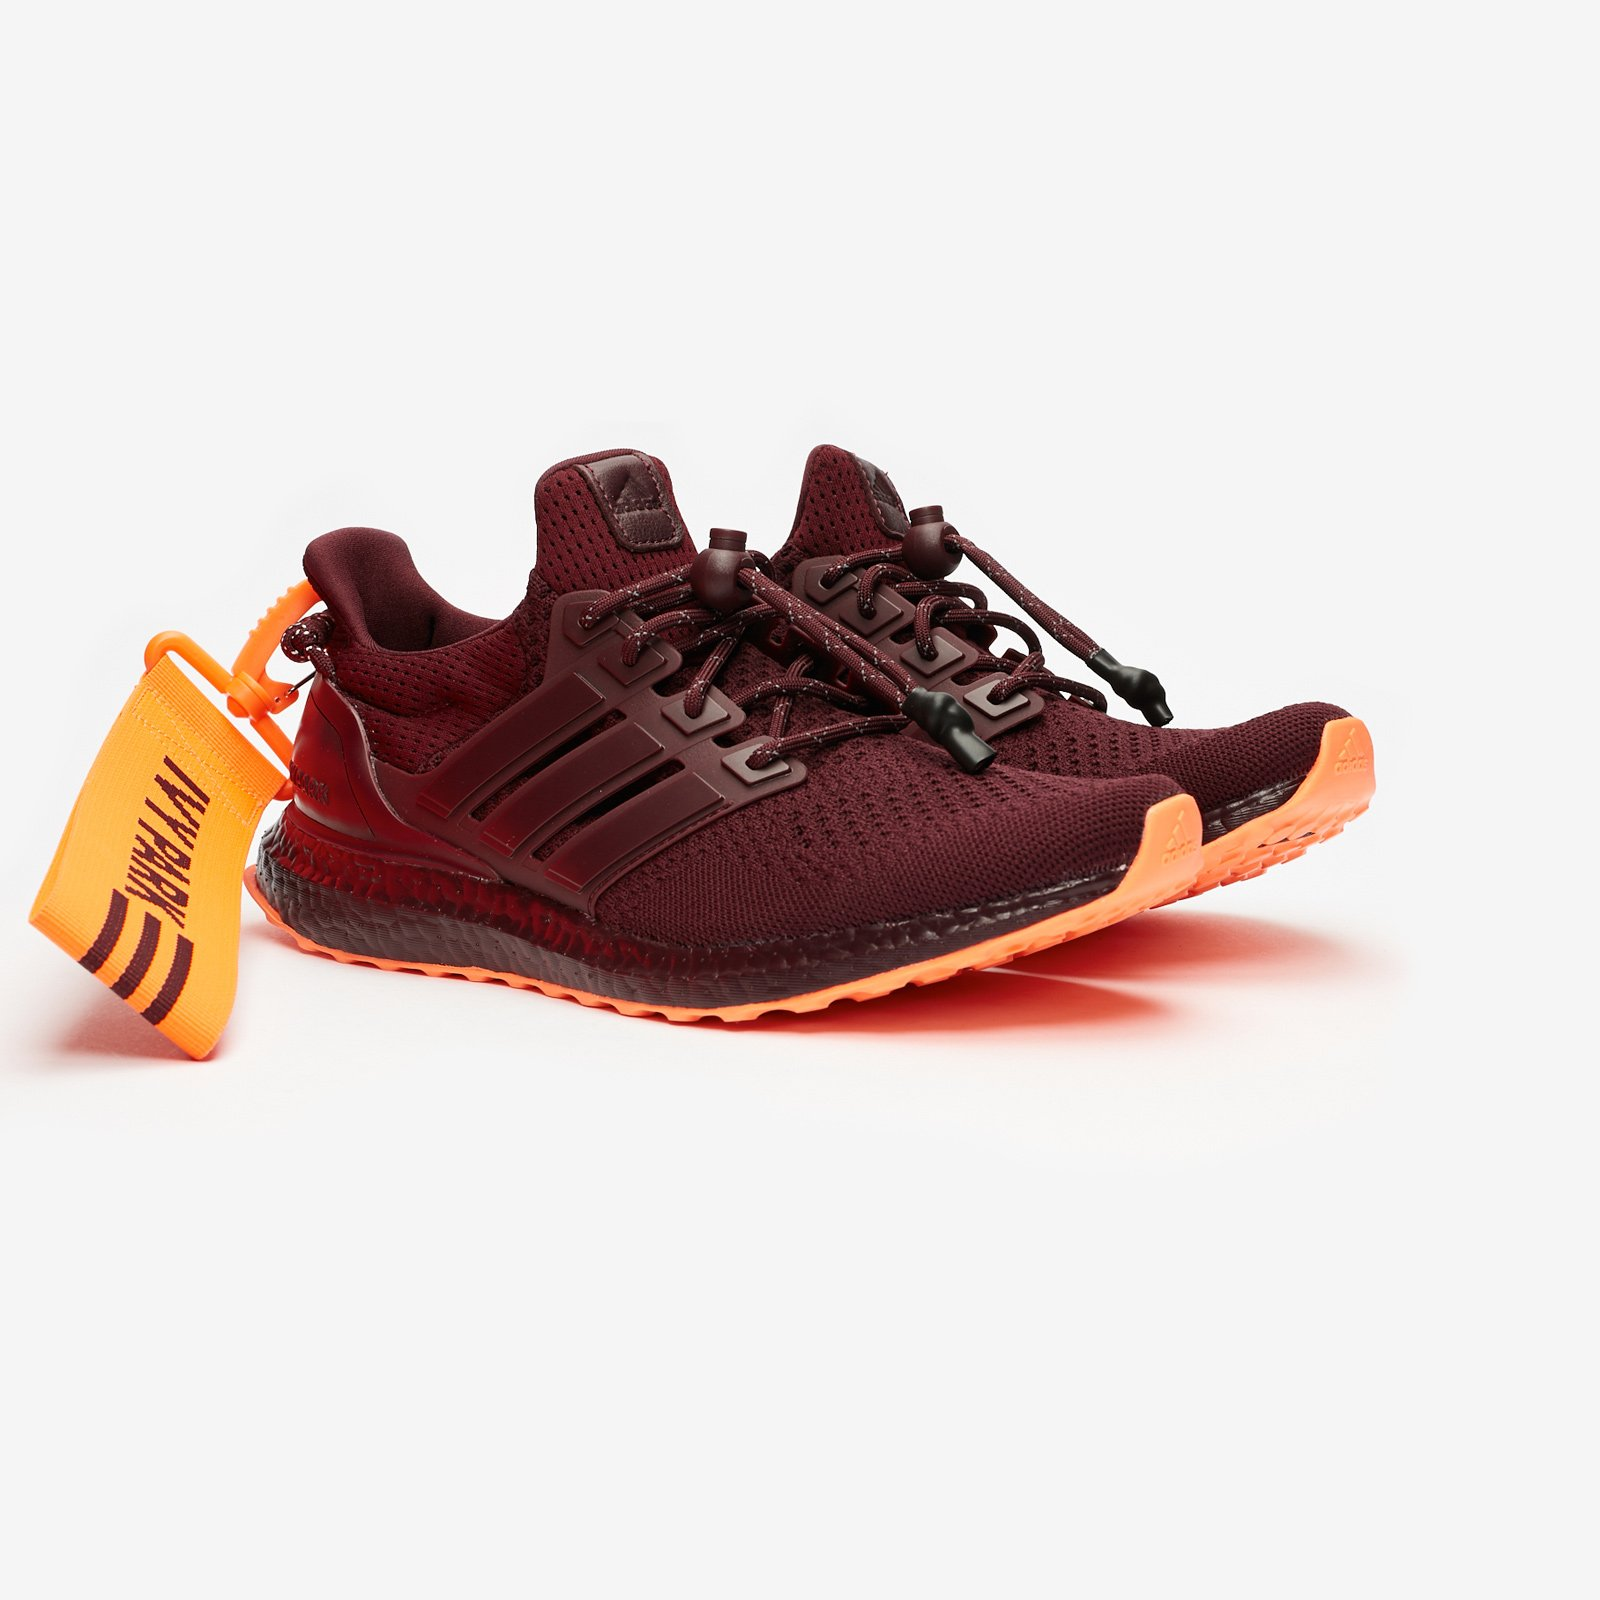 adidas ultraBoost x IVY PARK - Fx3163 - SNS | sneakers ...